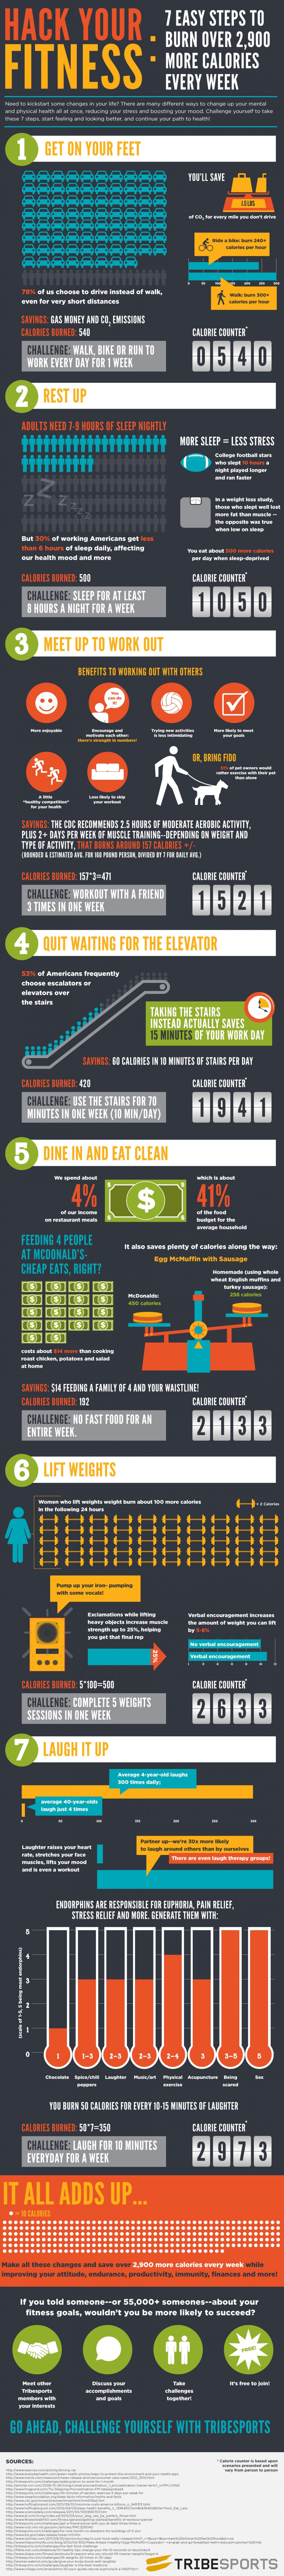 How To Burn Over 2900 More Calories Every Week Infographic